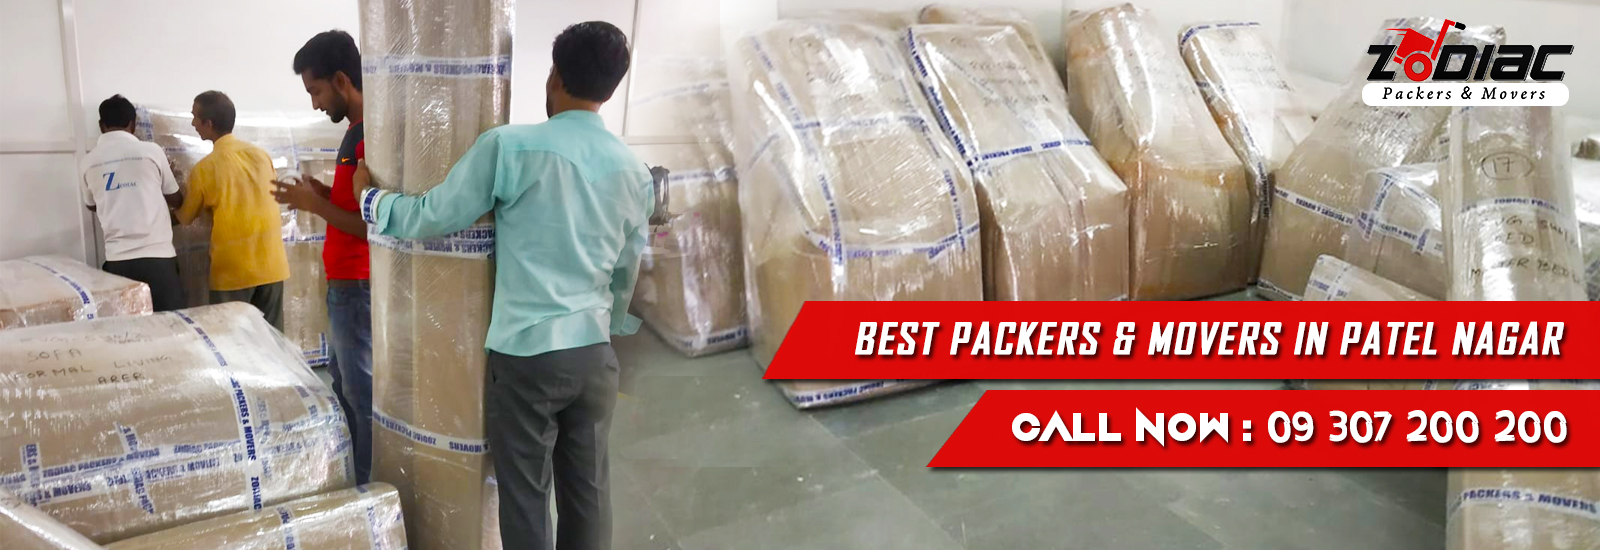 Packers and Movers in Patel Nagar